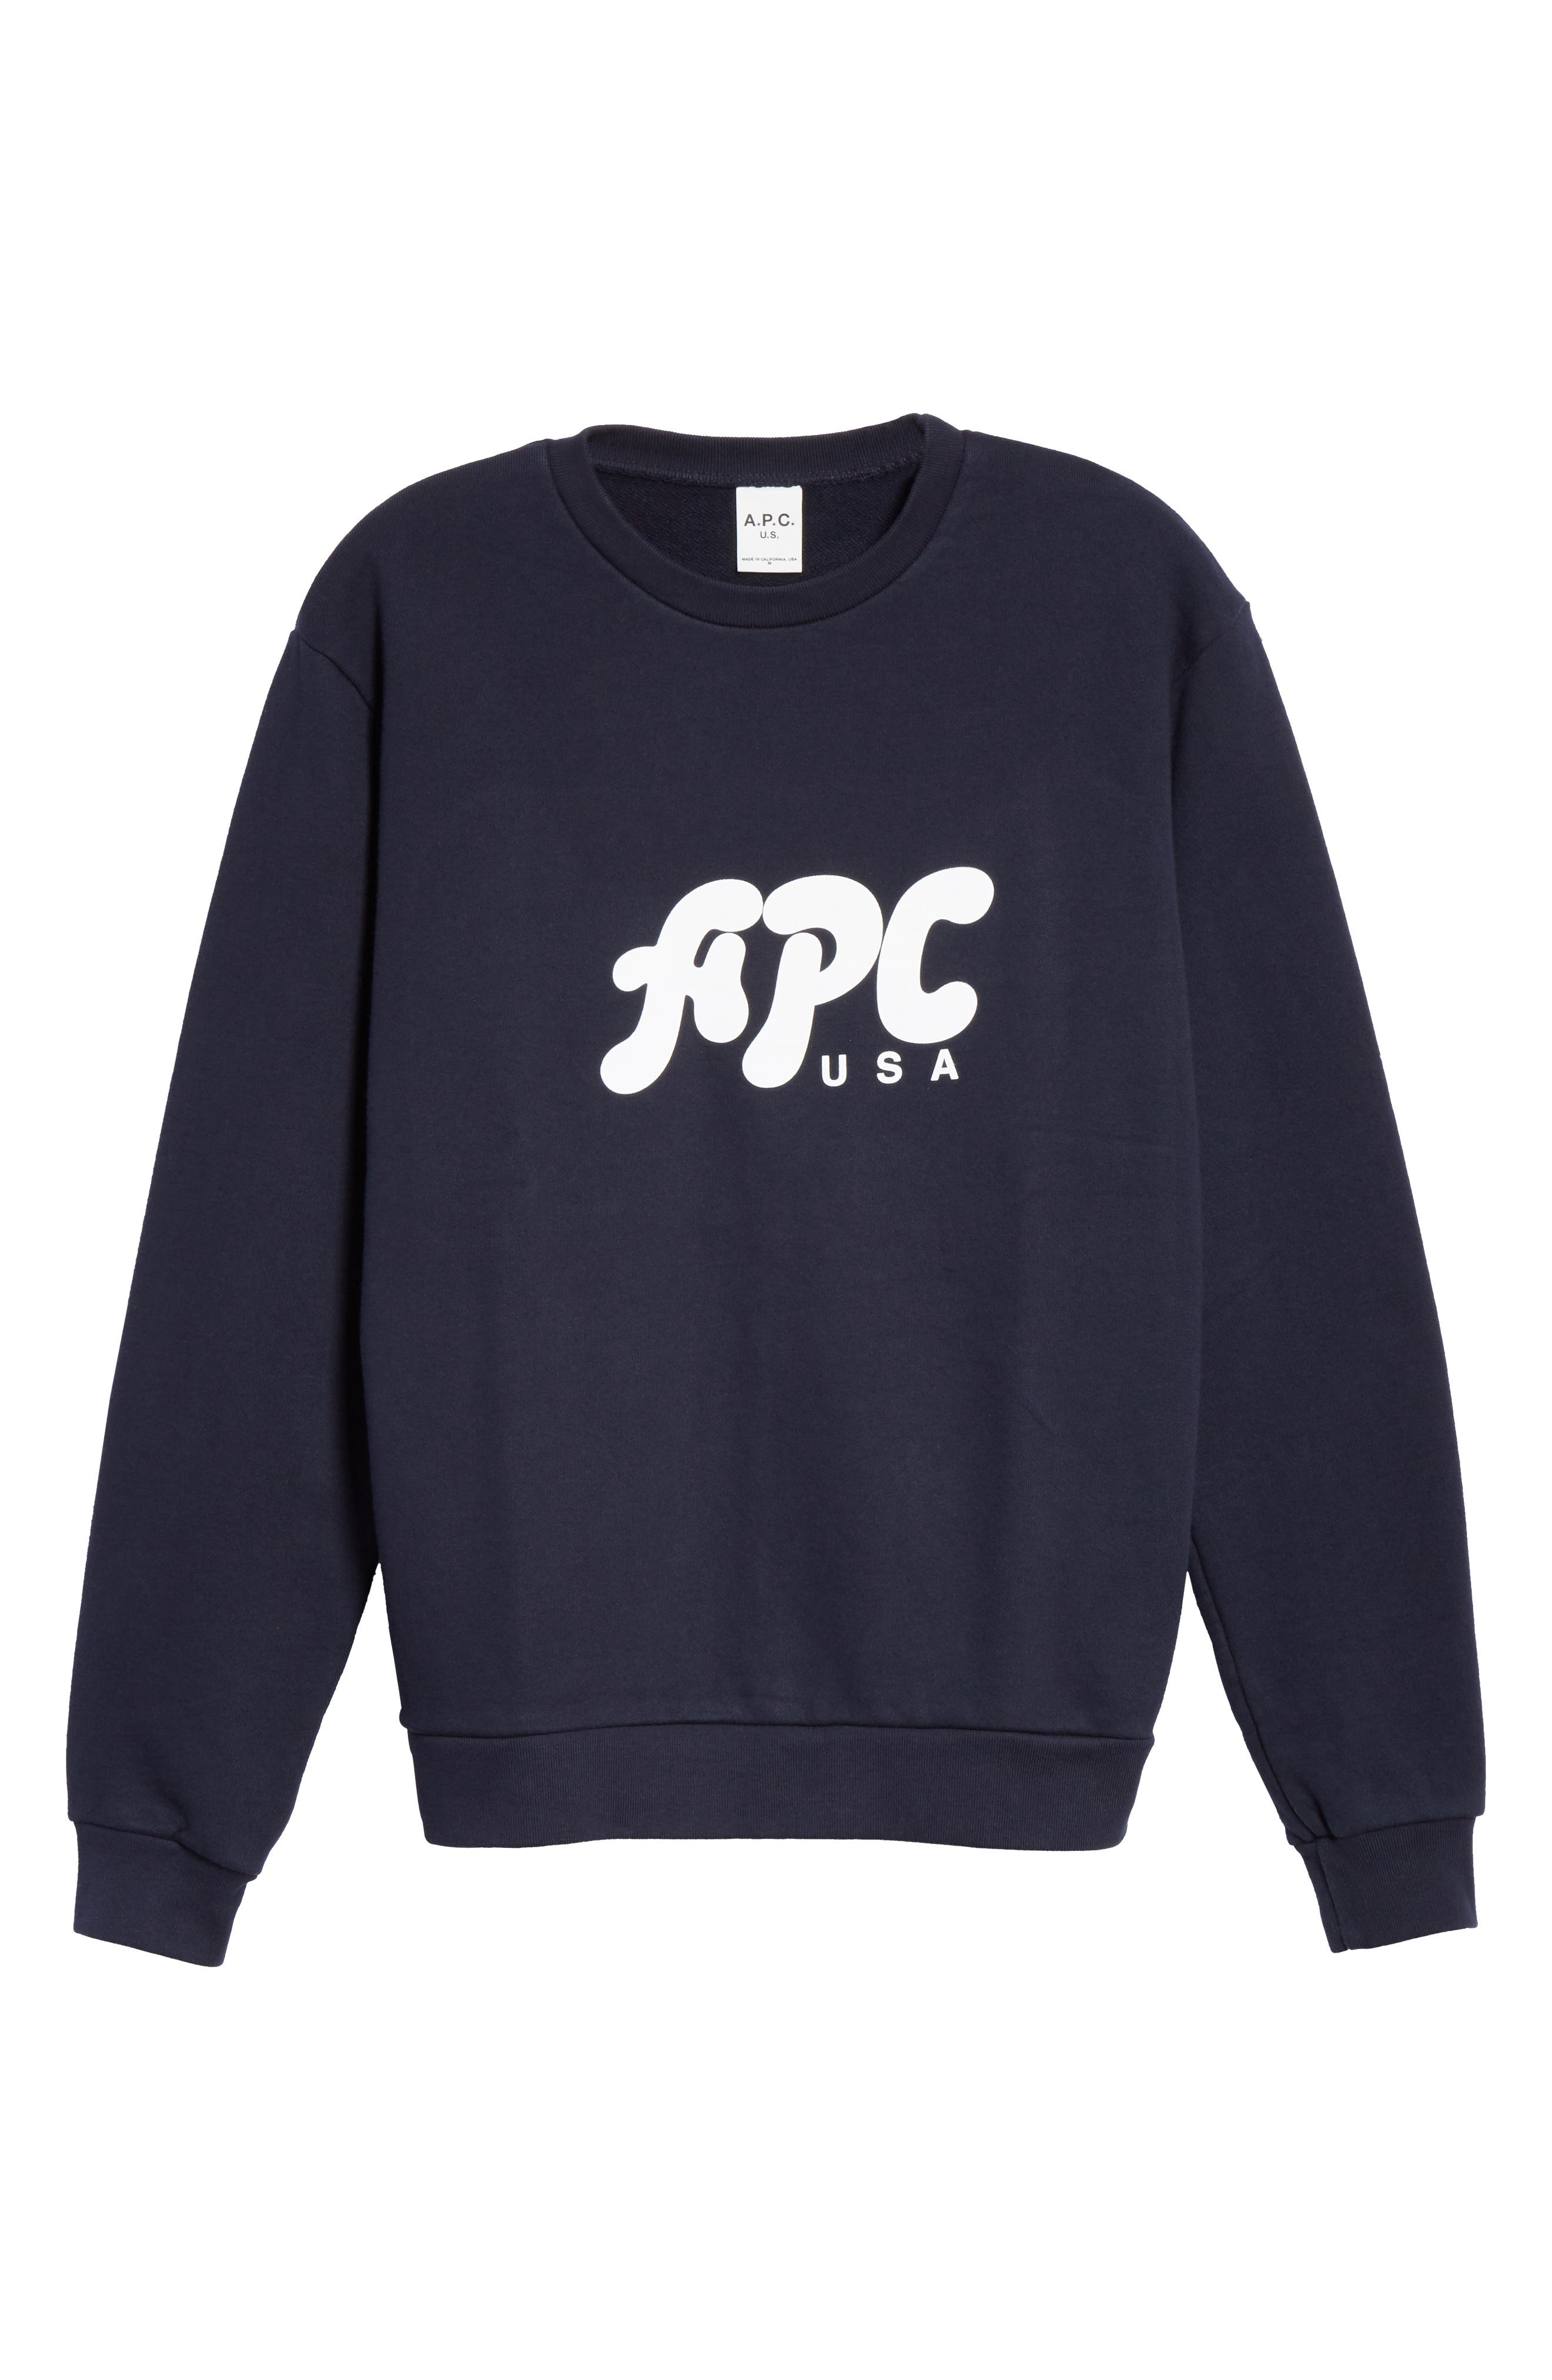 New Logo Crewneck Sweatshirt,                             Alternate thumbnail 6, color,                             IAK NAVY